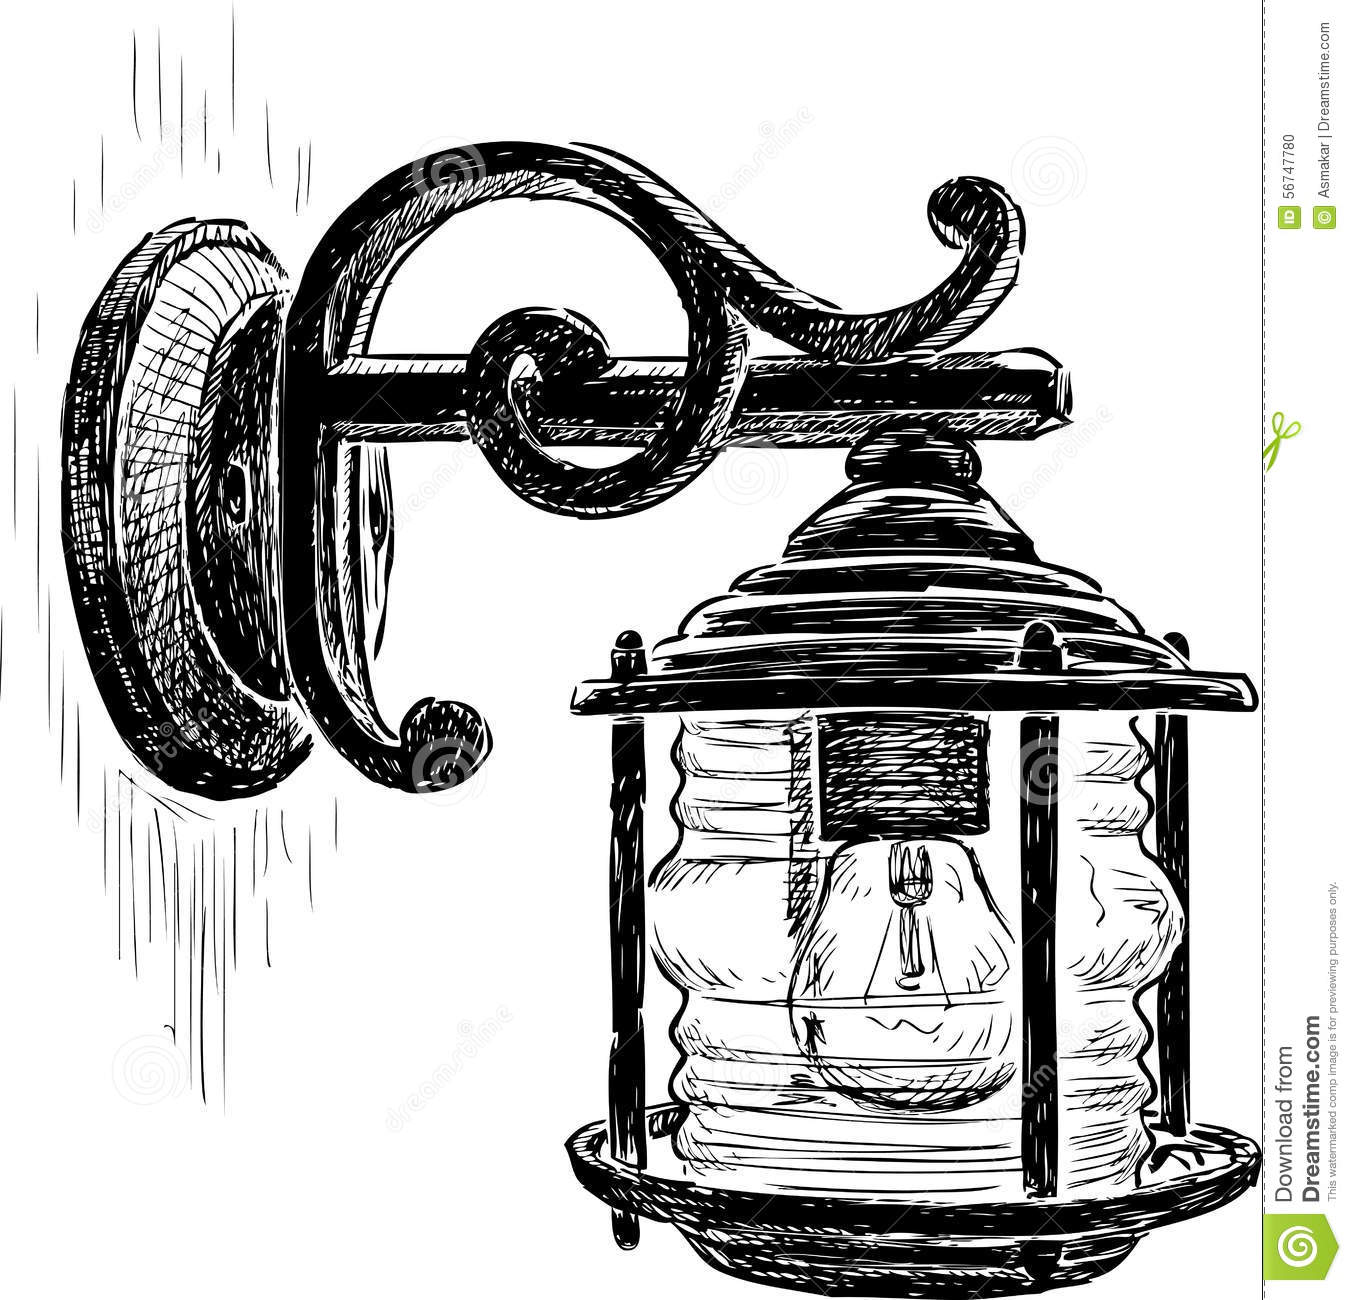 Porch Light Drawing: Vintage Street Lamp Stock Vector. Image Of Sketch